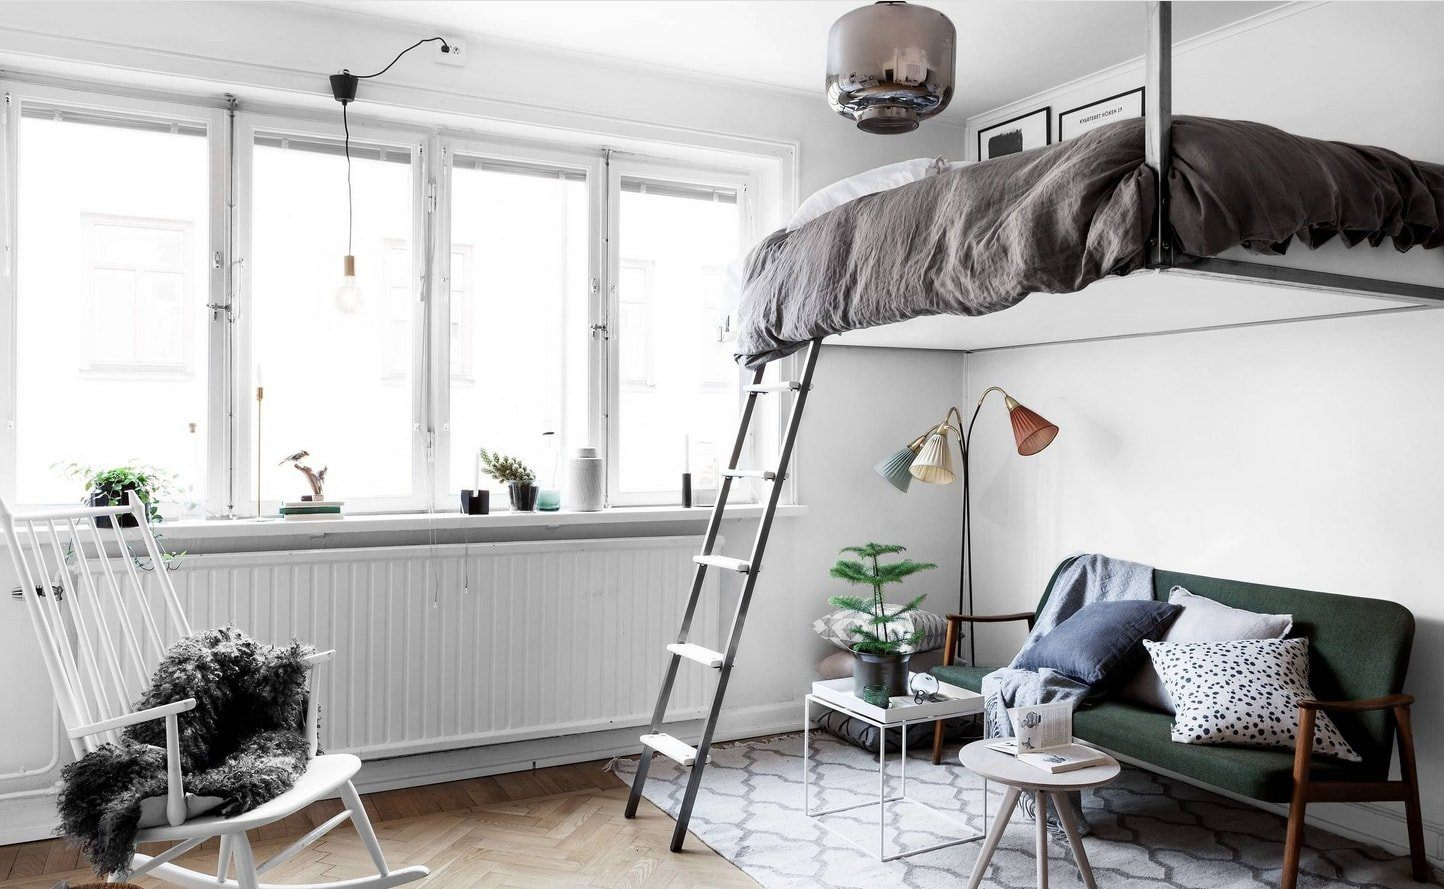 Studio Apartment Bedroom: Design Ideas and Pro Designers' Advice. Top bed with the ladder in Scando style